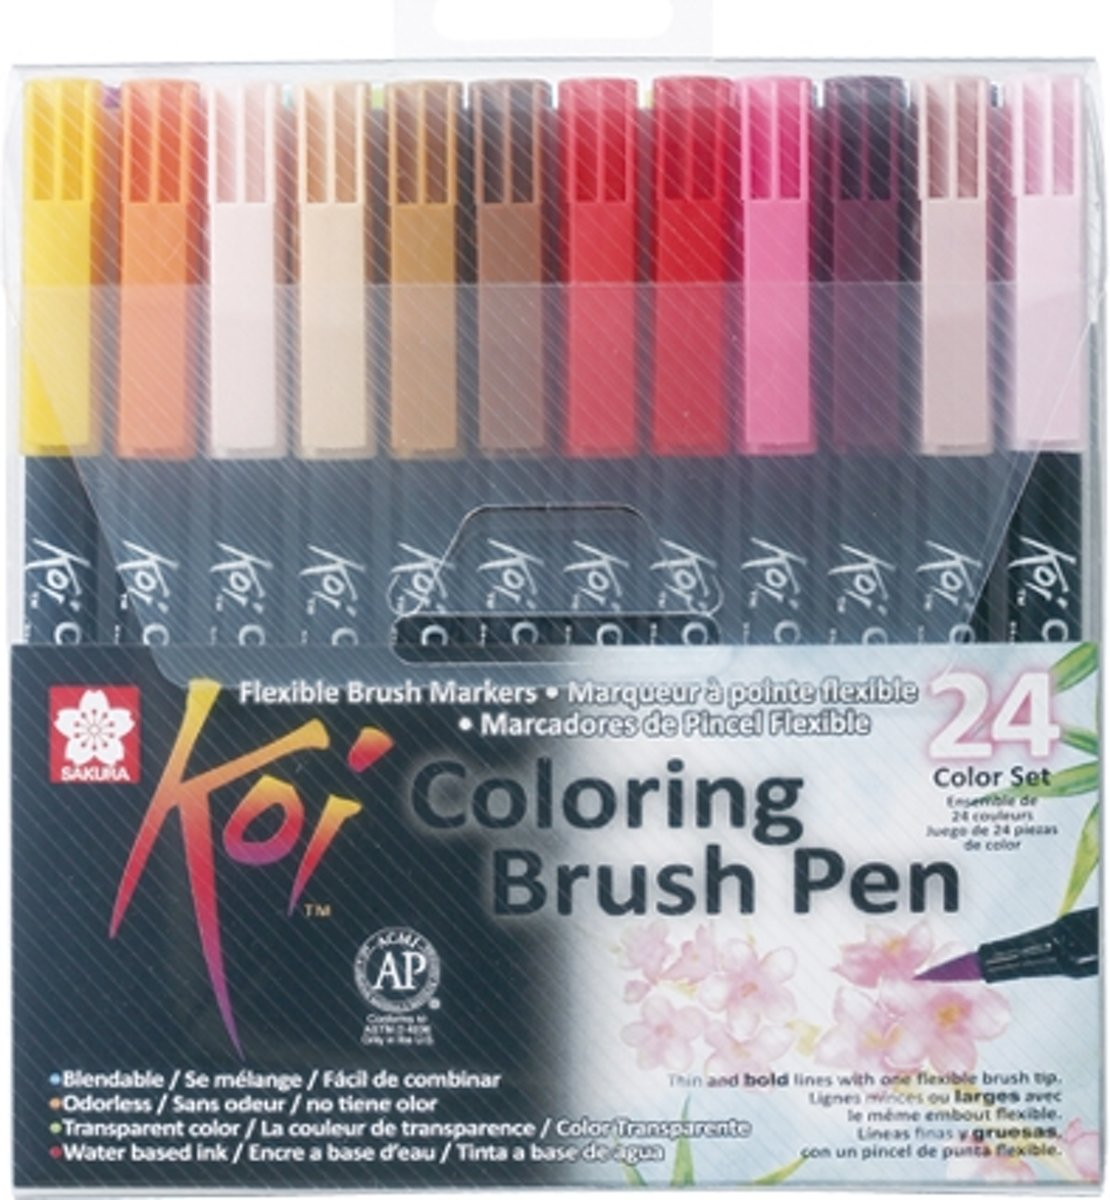 Koi Coloring Brush Pen set 24 kleuren brushpen penseelpen penseelstift